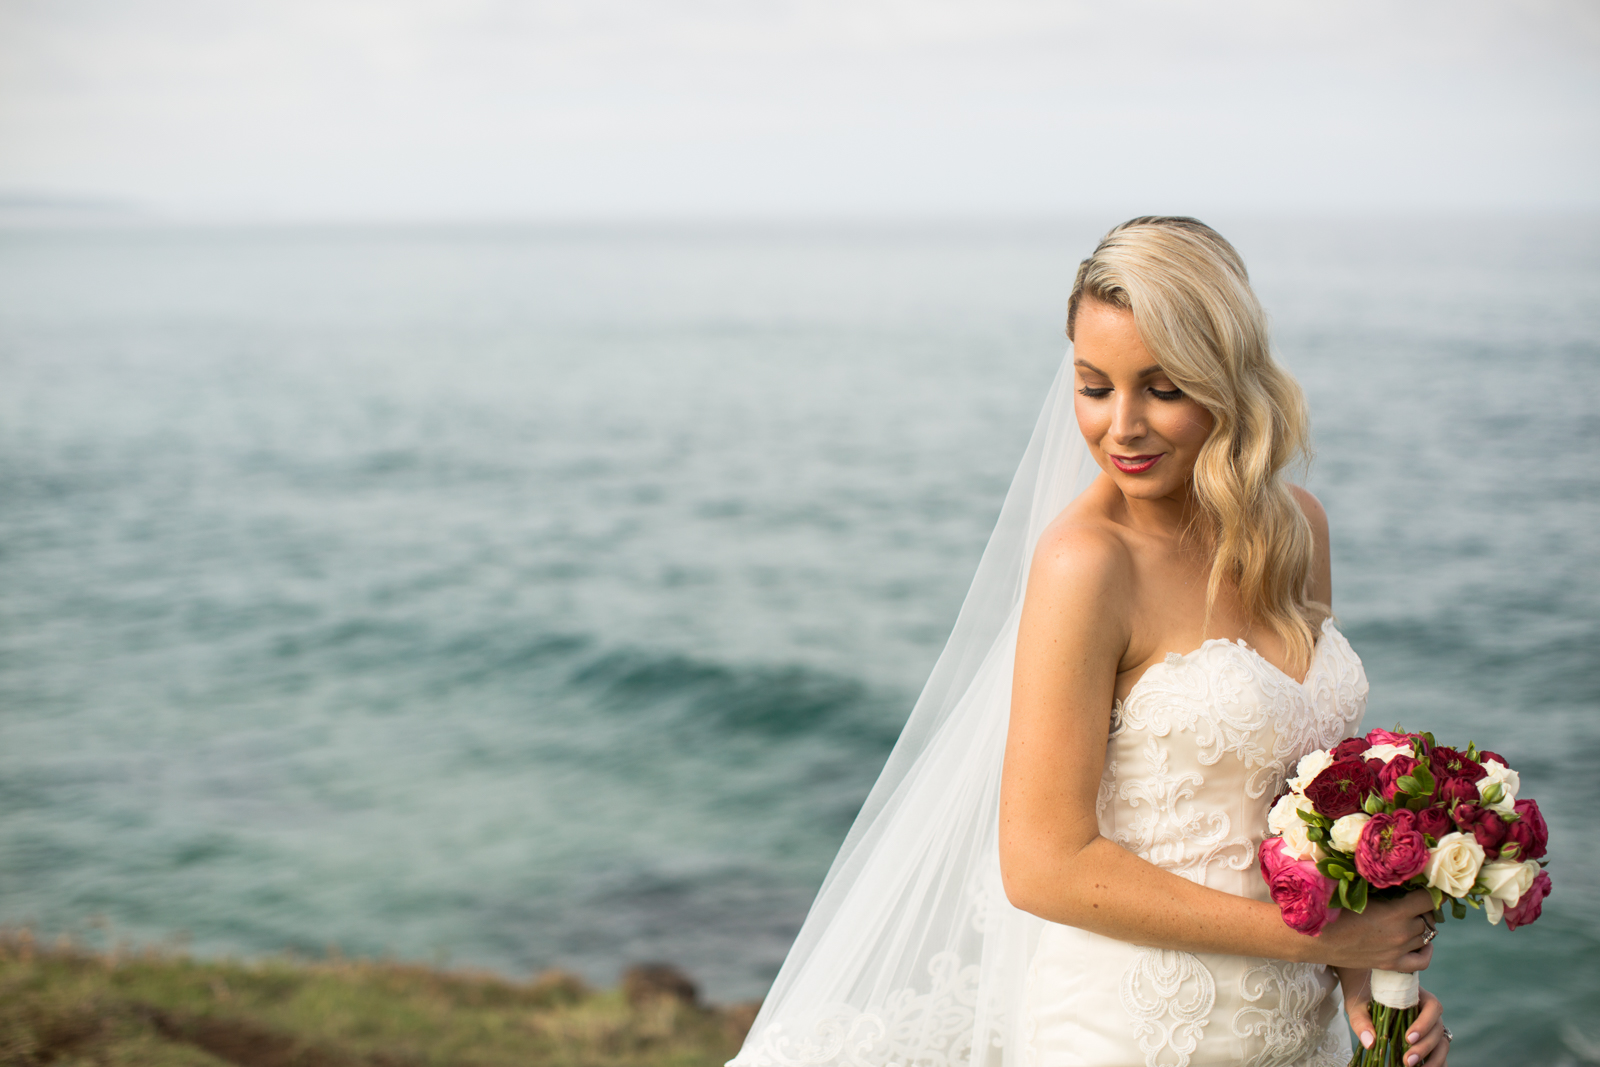 13Bec_Kilpatrick_Photography_Kate_and_Elliot_Ballina_Wedding_Portraits-XXX_929422